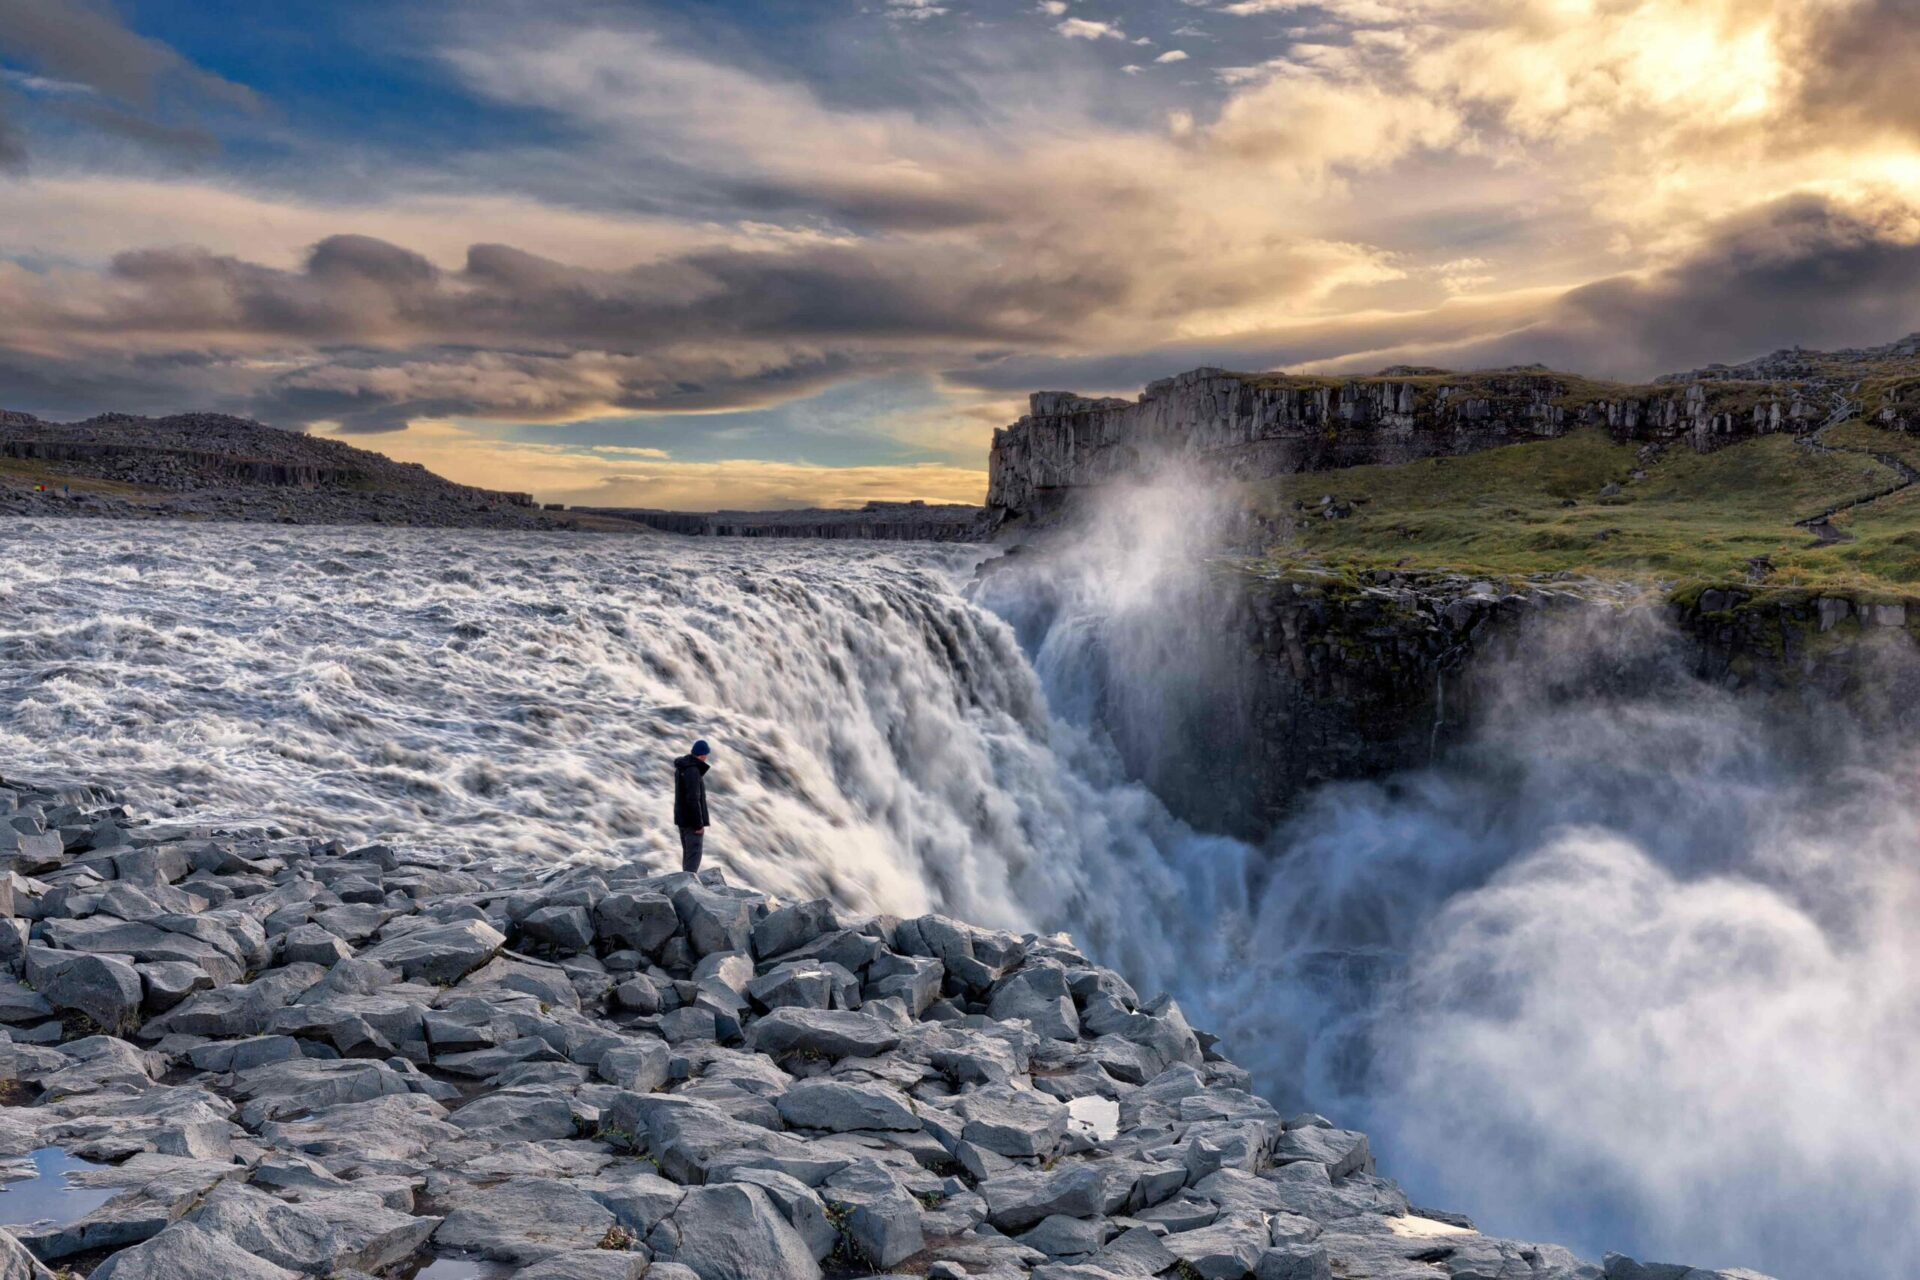 man standing in front of Dettifoss the most powerful waterfall in Europe